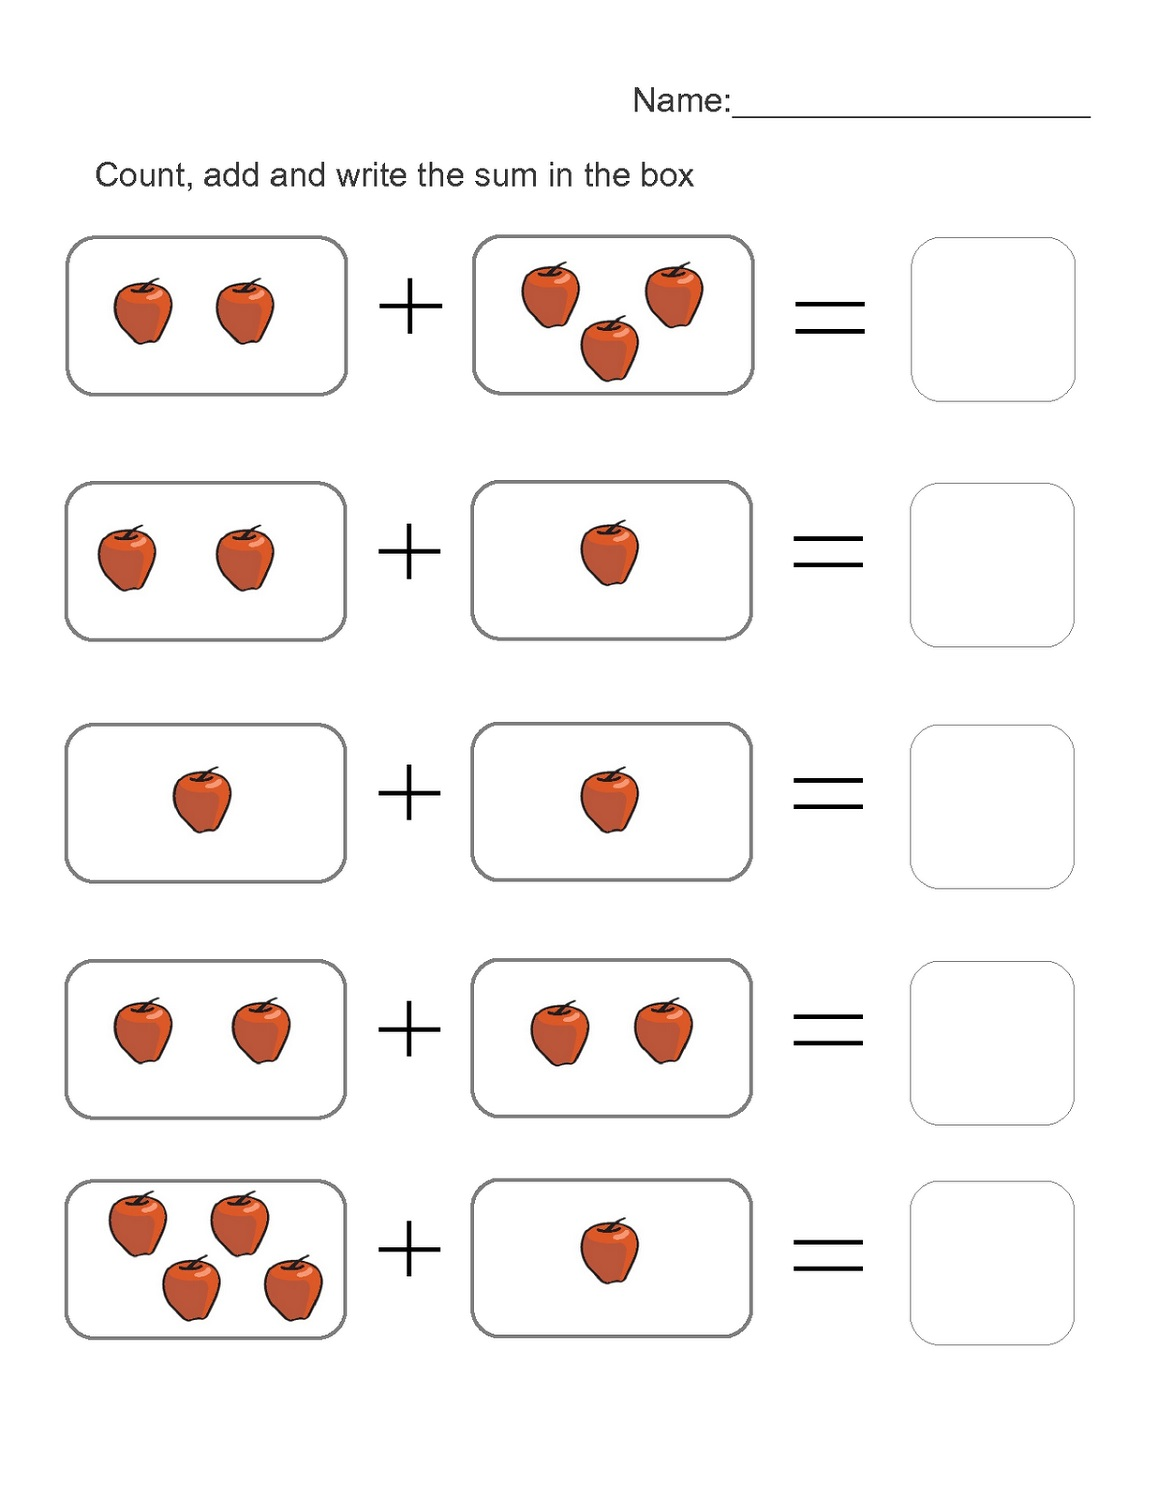 4 year old worksheets for kids